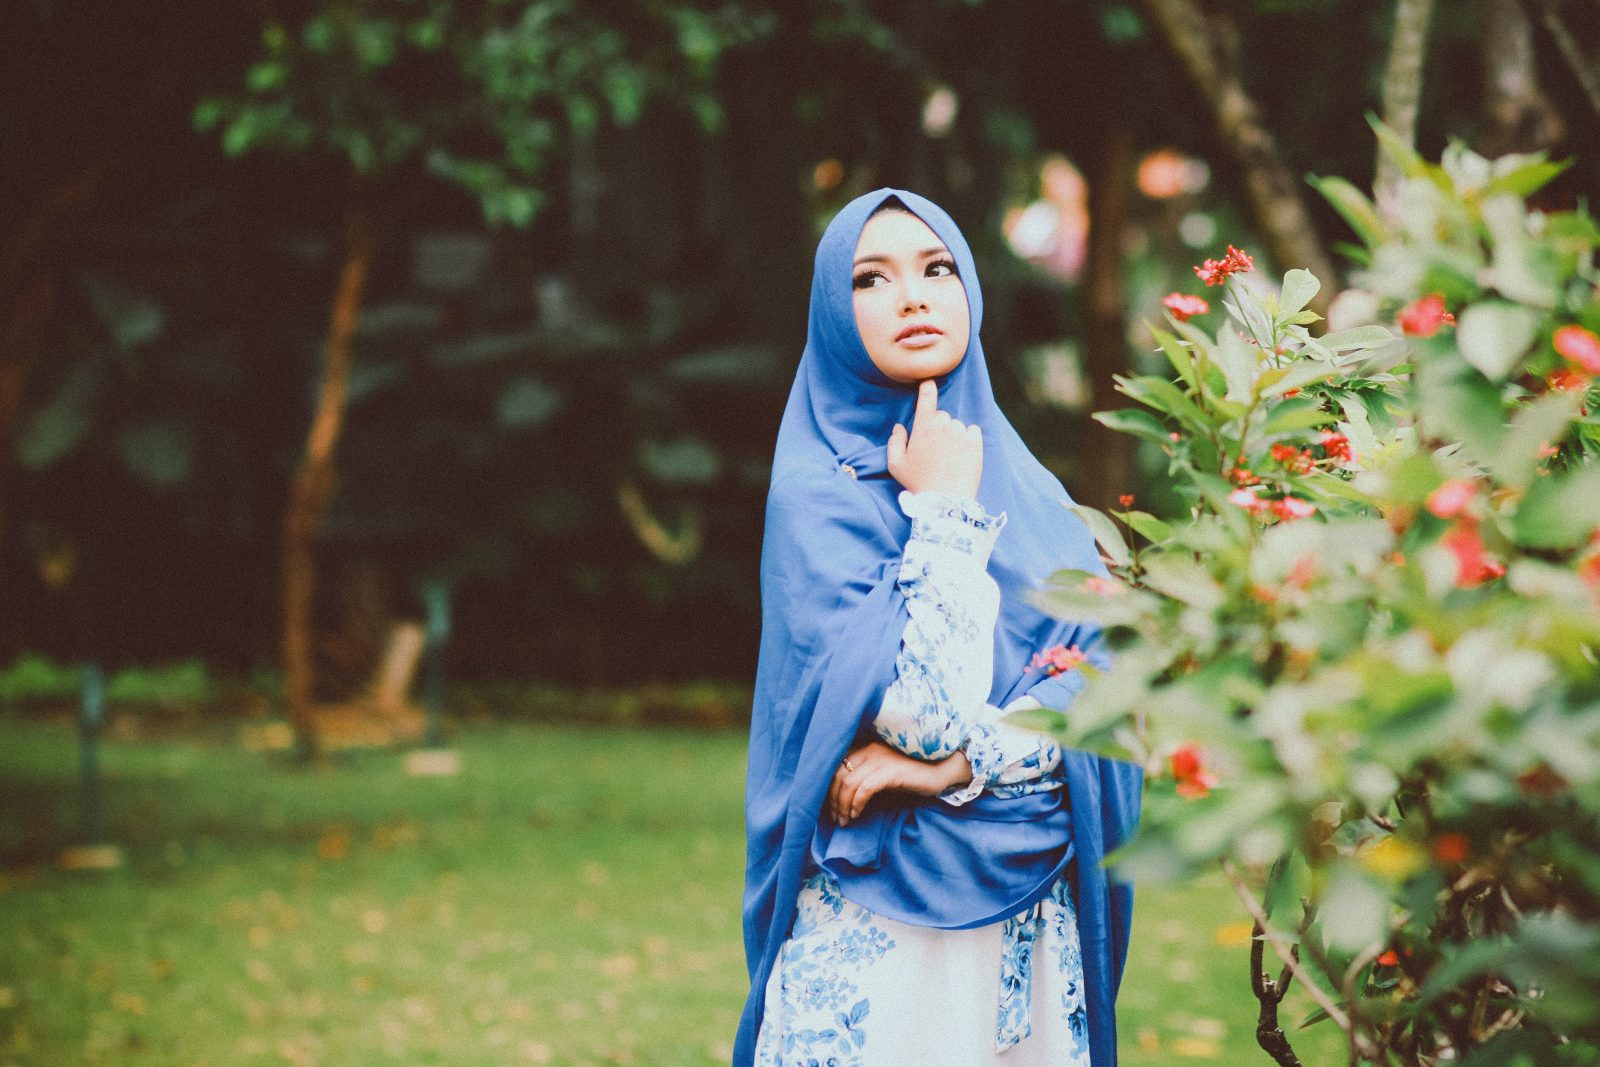 The hijab, niqab, burqa and other coverings.